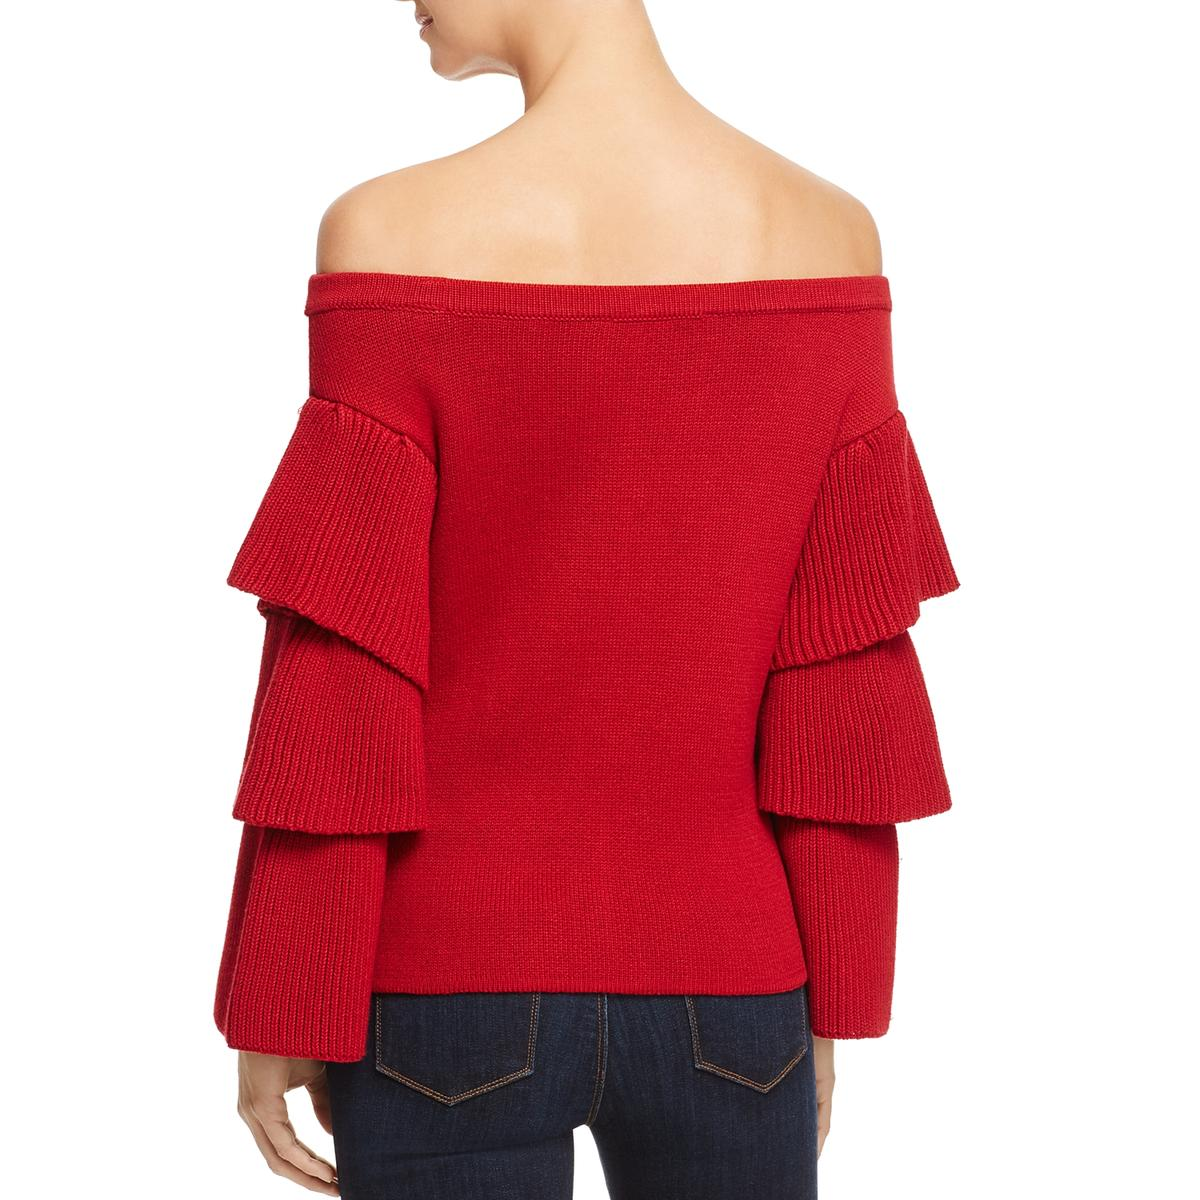 9b53c5220ca06 Details about Endless Rose Womens Red Off-The-Shoulder Knit Pullover  Sweater Top XS BHFO 5259